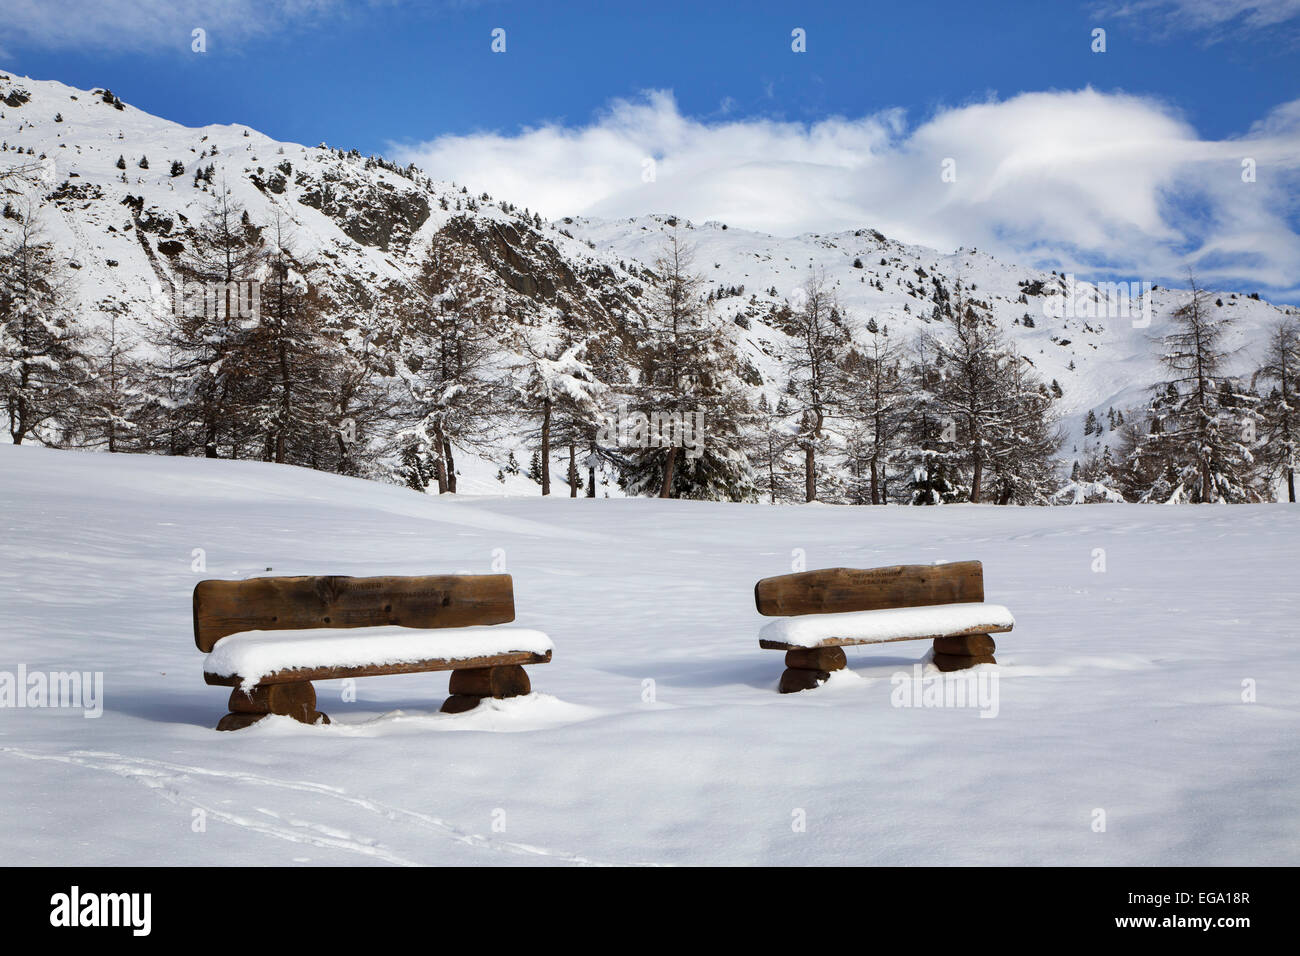 Two snow covered wooden benches at the village Riederalp in winter, Wallis / Valais, Switzerland - Stock Image